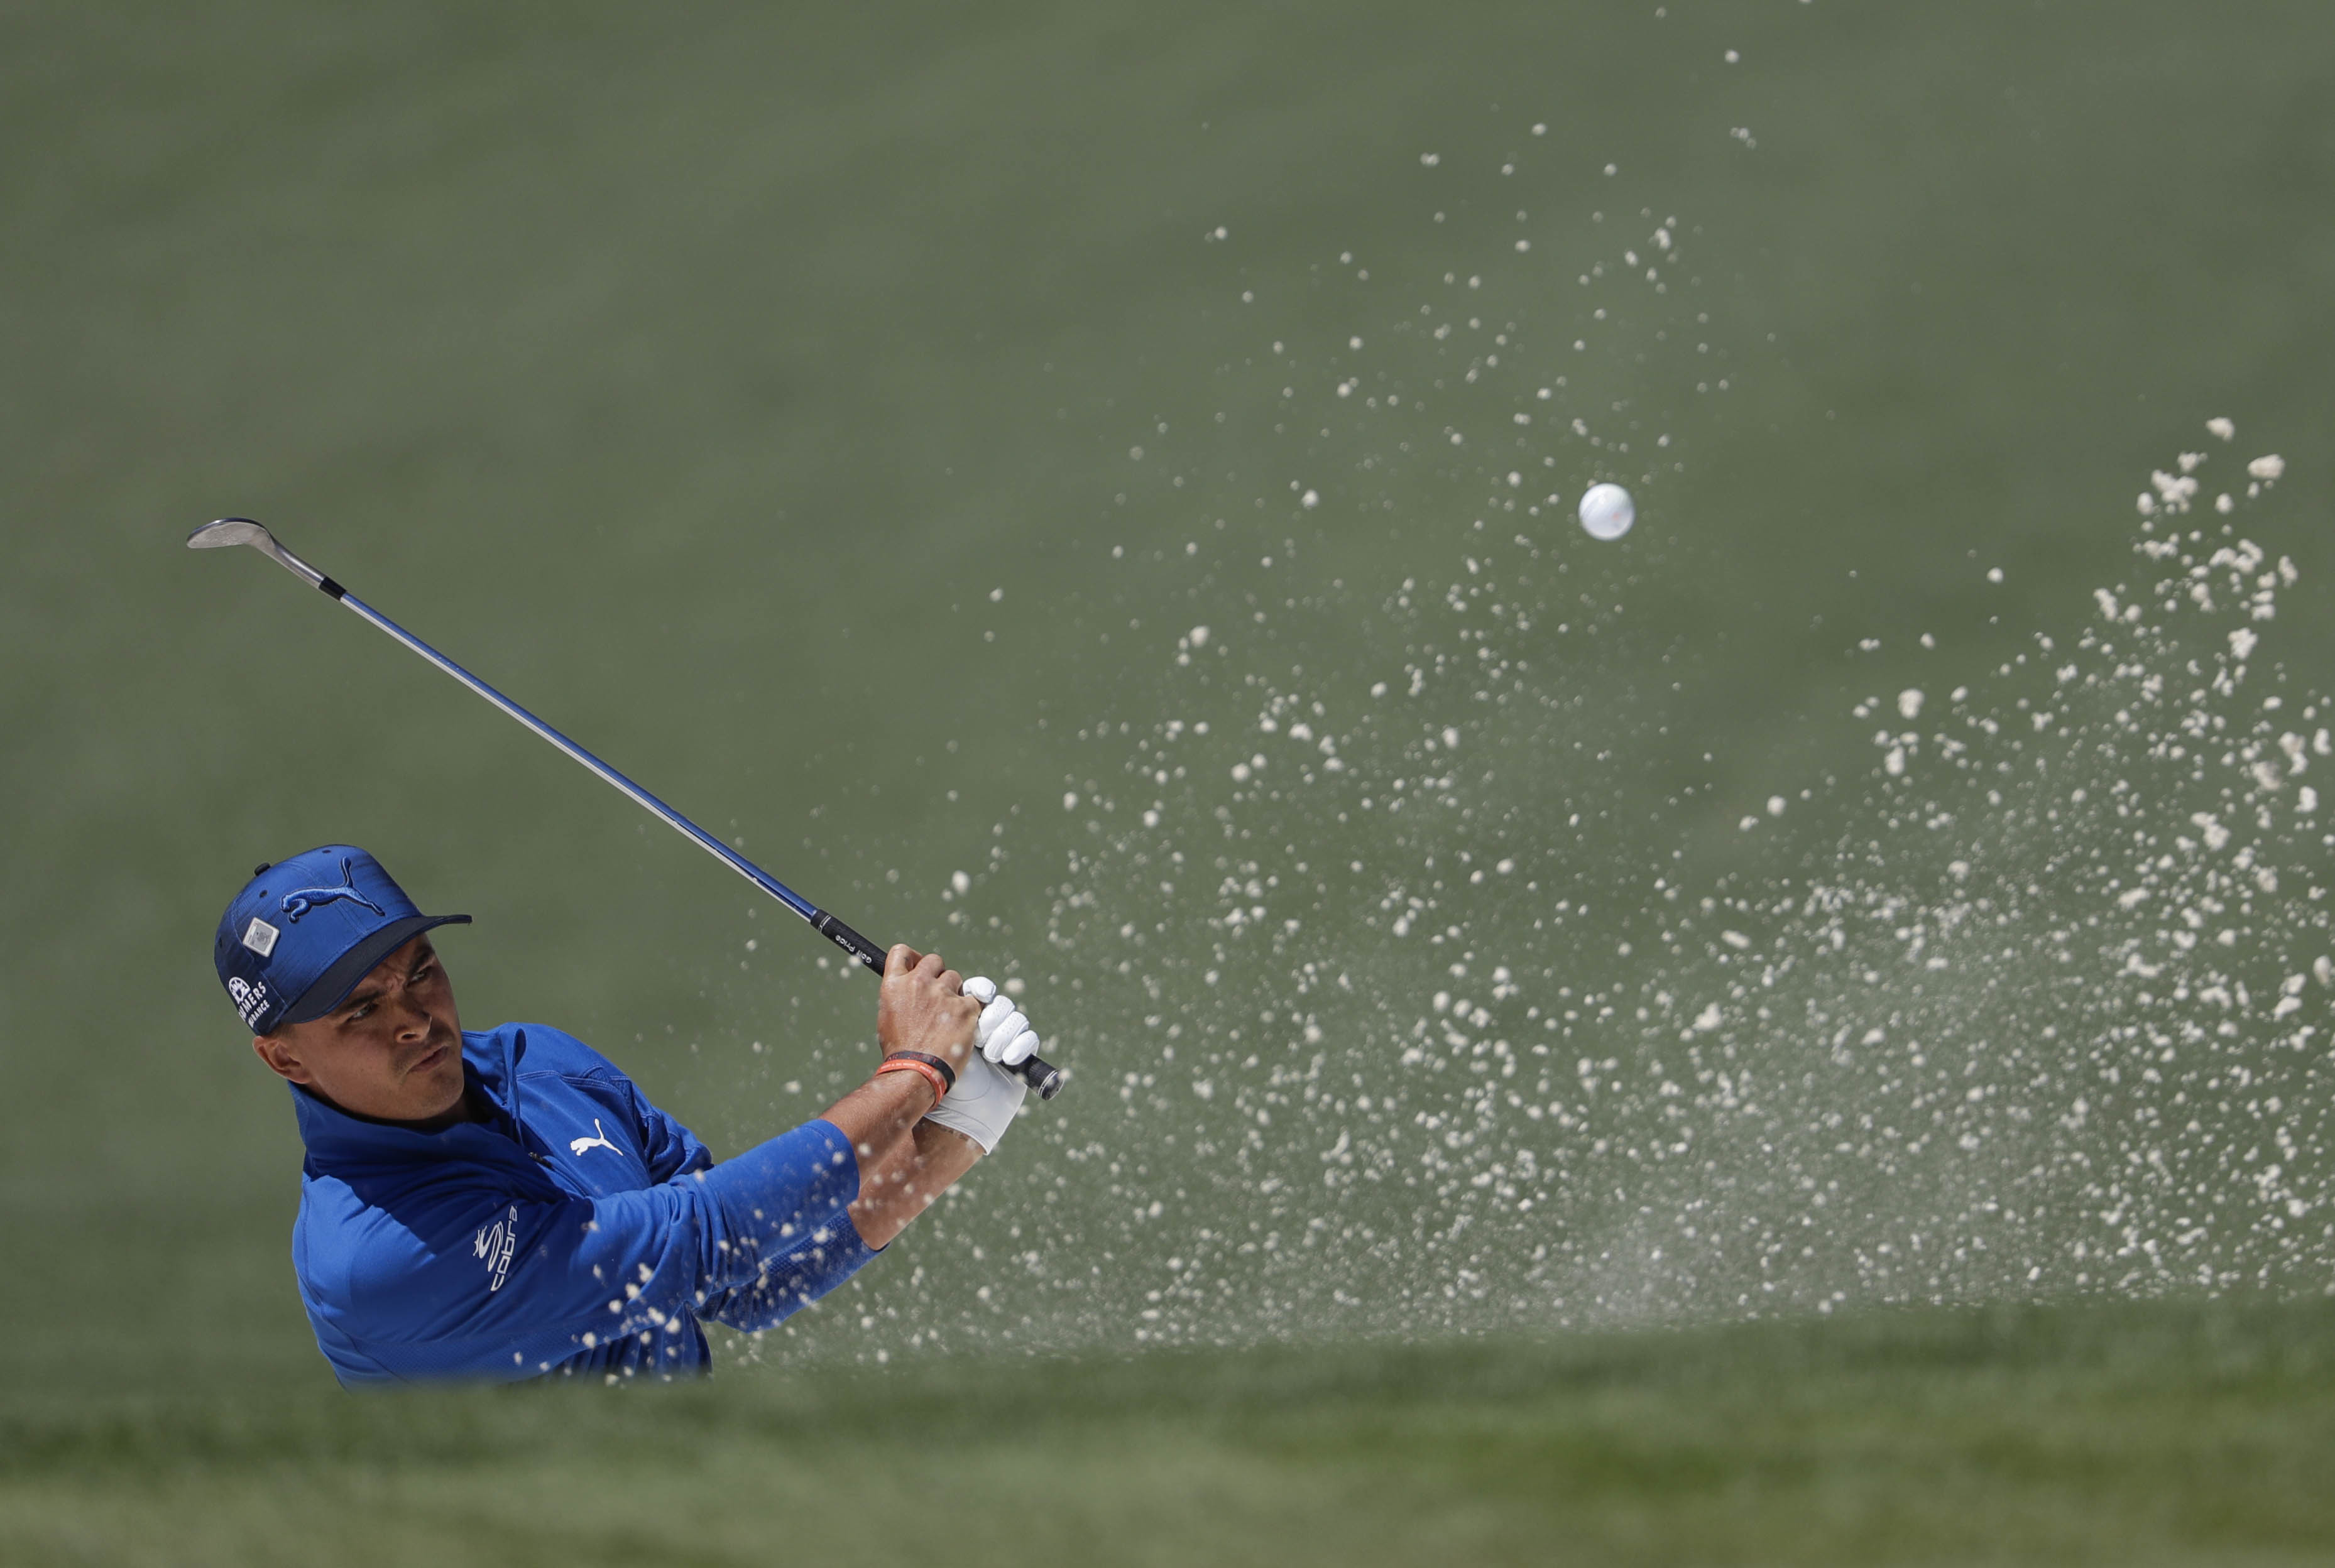 Rickie Fowler hits from a bunker on the second hole during the second round of the Masters golf tournament Friday, April 7, in Augusta, Ga. (AP Photo/David Goldman)